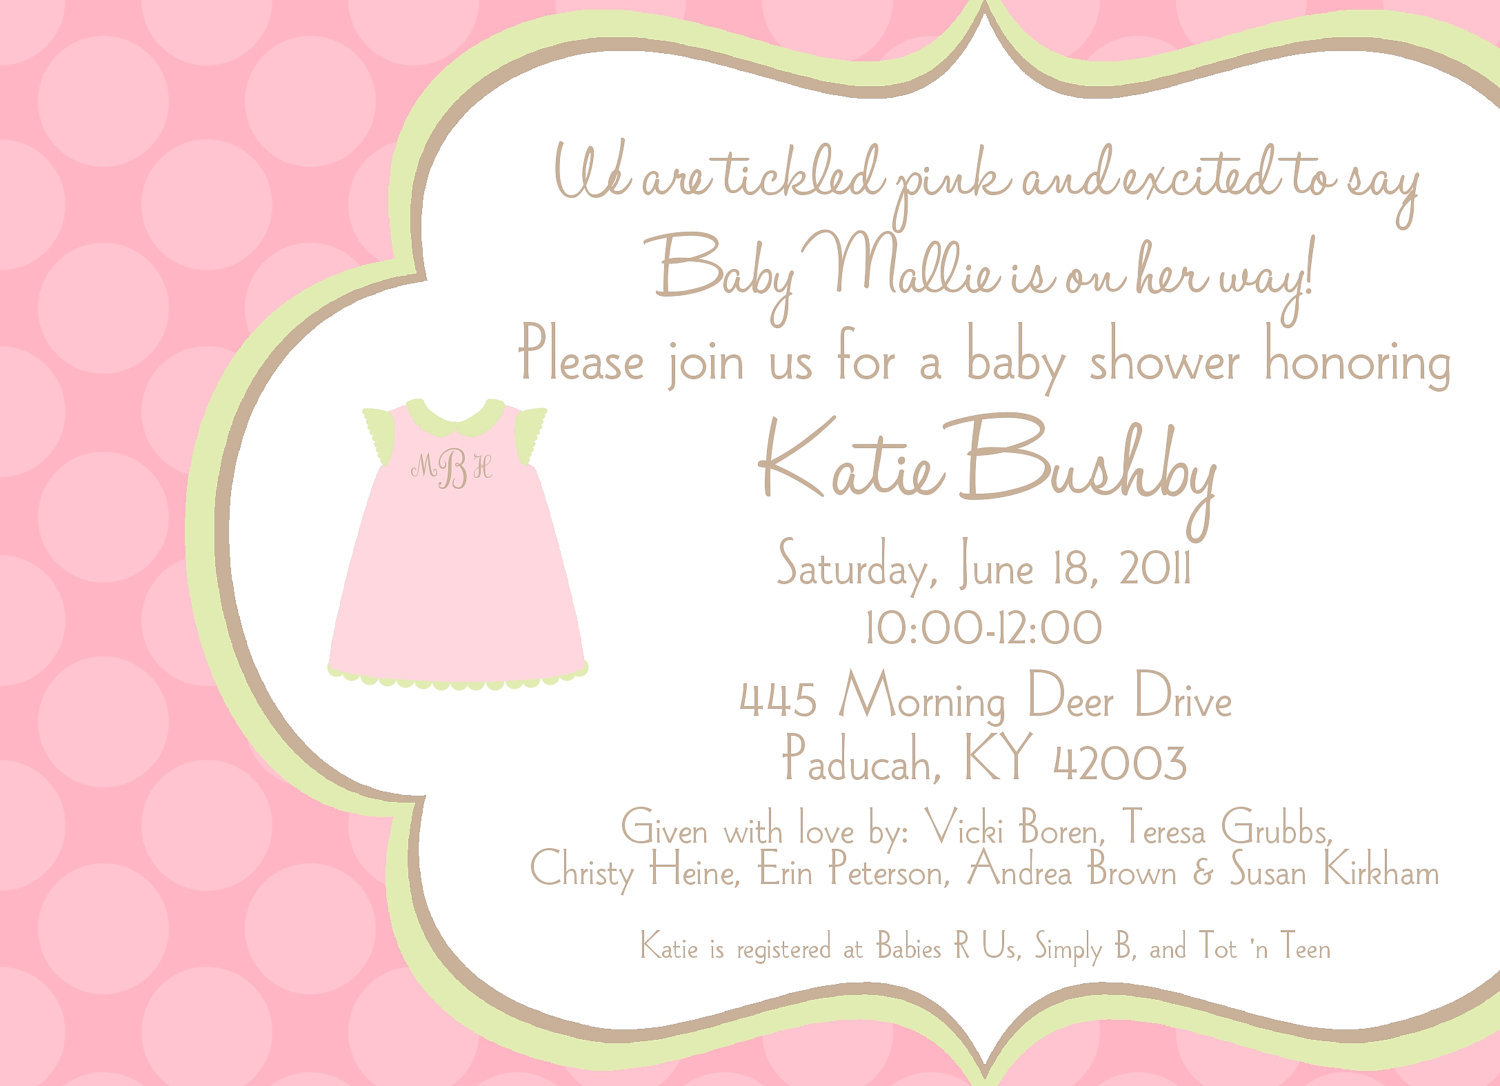 Full Size of Baby Shower:baby Shower Halls With Baby Shower At The Park Plus Recuerdos De Baby Shower Together With Fun Baby Shower Games As Well As Baby Shower Hostess Gifts And Baby Shower Verses Baby Shower Invitation Wording As Well As Baby Shower Adalah With Best Baby Shower Gifts 2018 Plus Baby Shower Names Together With Baby Boy Shower Favors